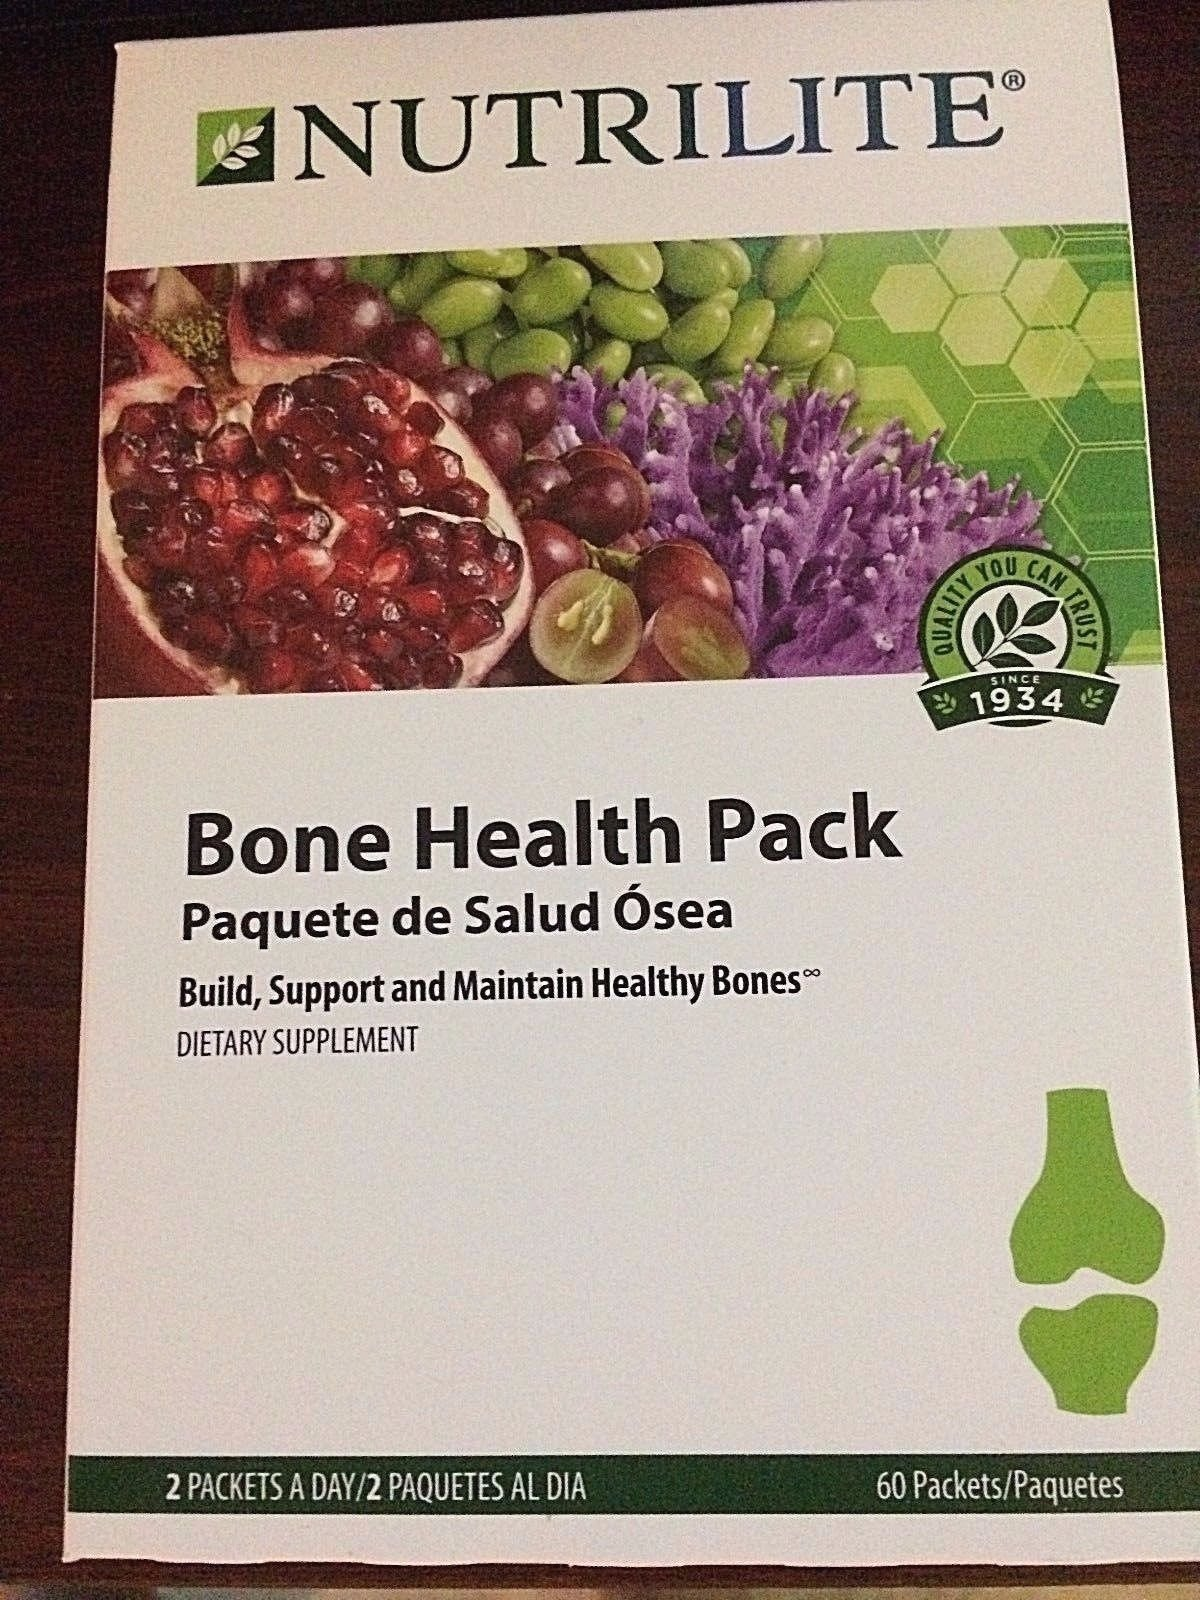 Nutrilite® Bone Health Pack